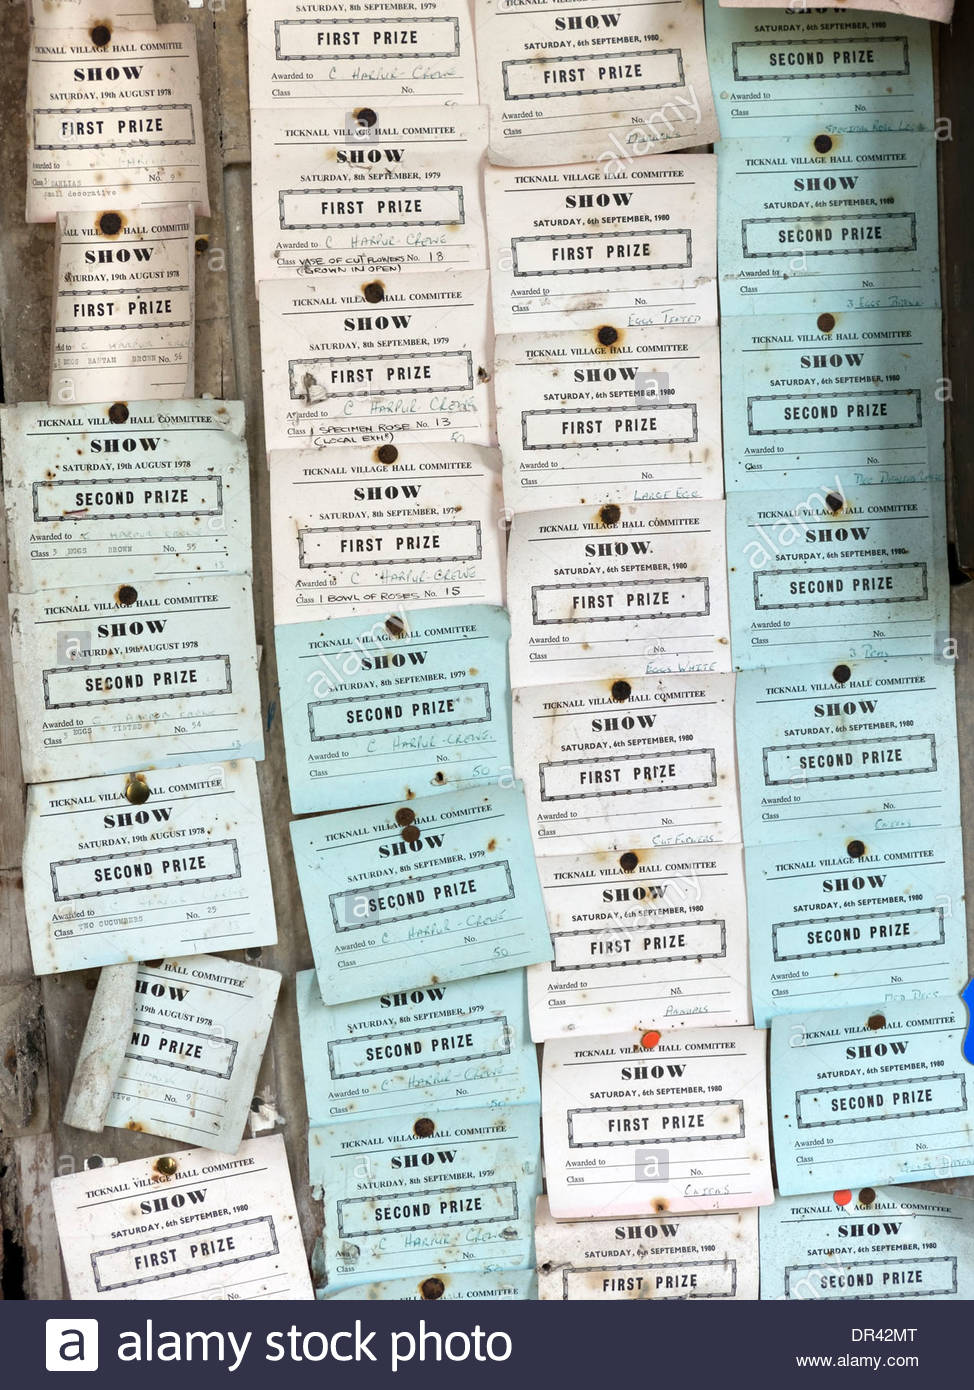 Old prize winning cards from Ticknall Village Hall Shows pinned on noticeboard in gardener's bothy, Calke Abbey, Ticknall. - Stock Image